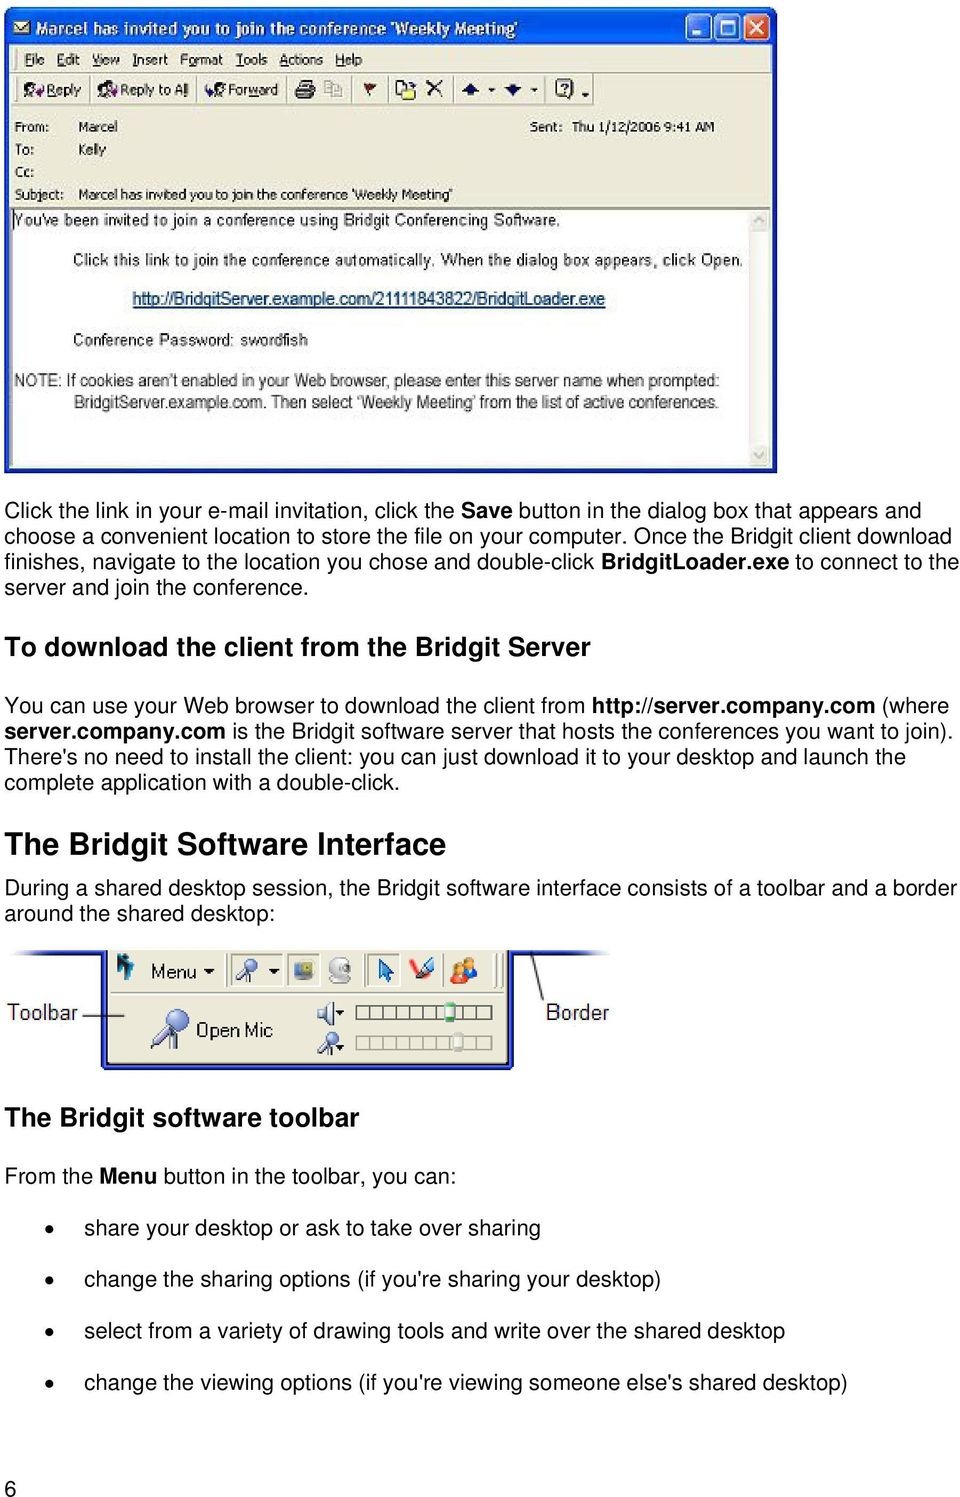 To download the client from the Bridgit Server You can use your Web browser to download the client from http://server.company.